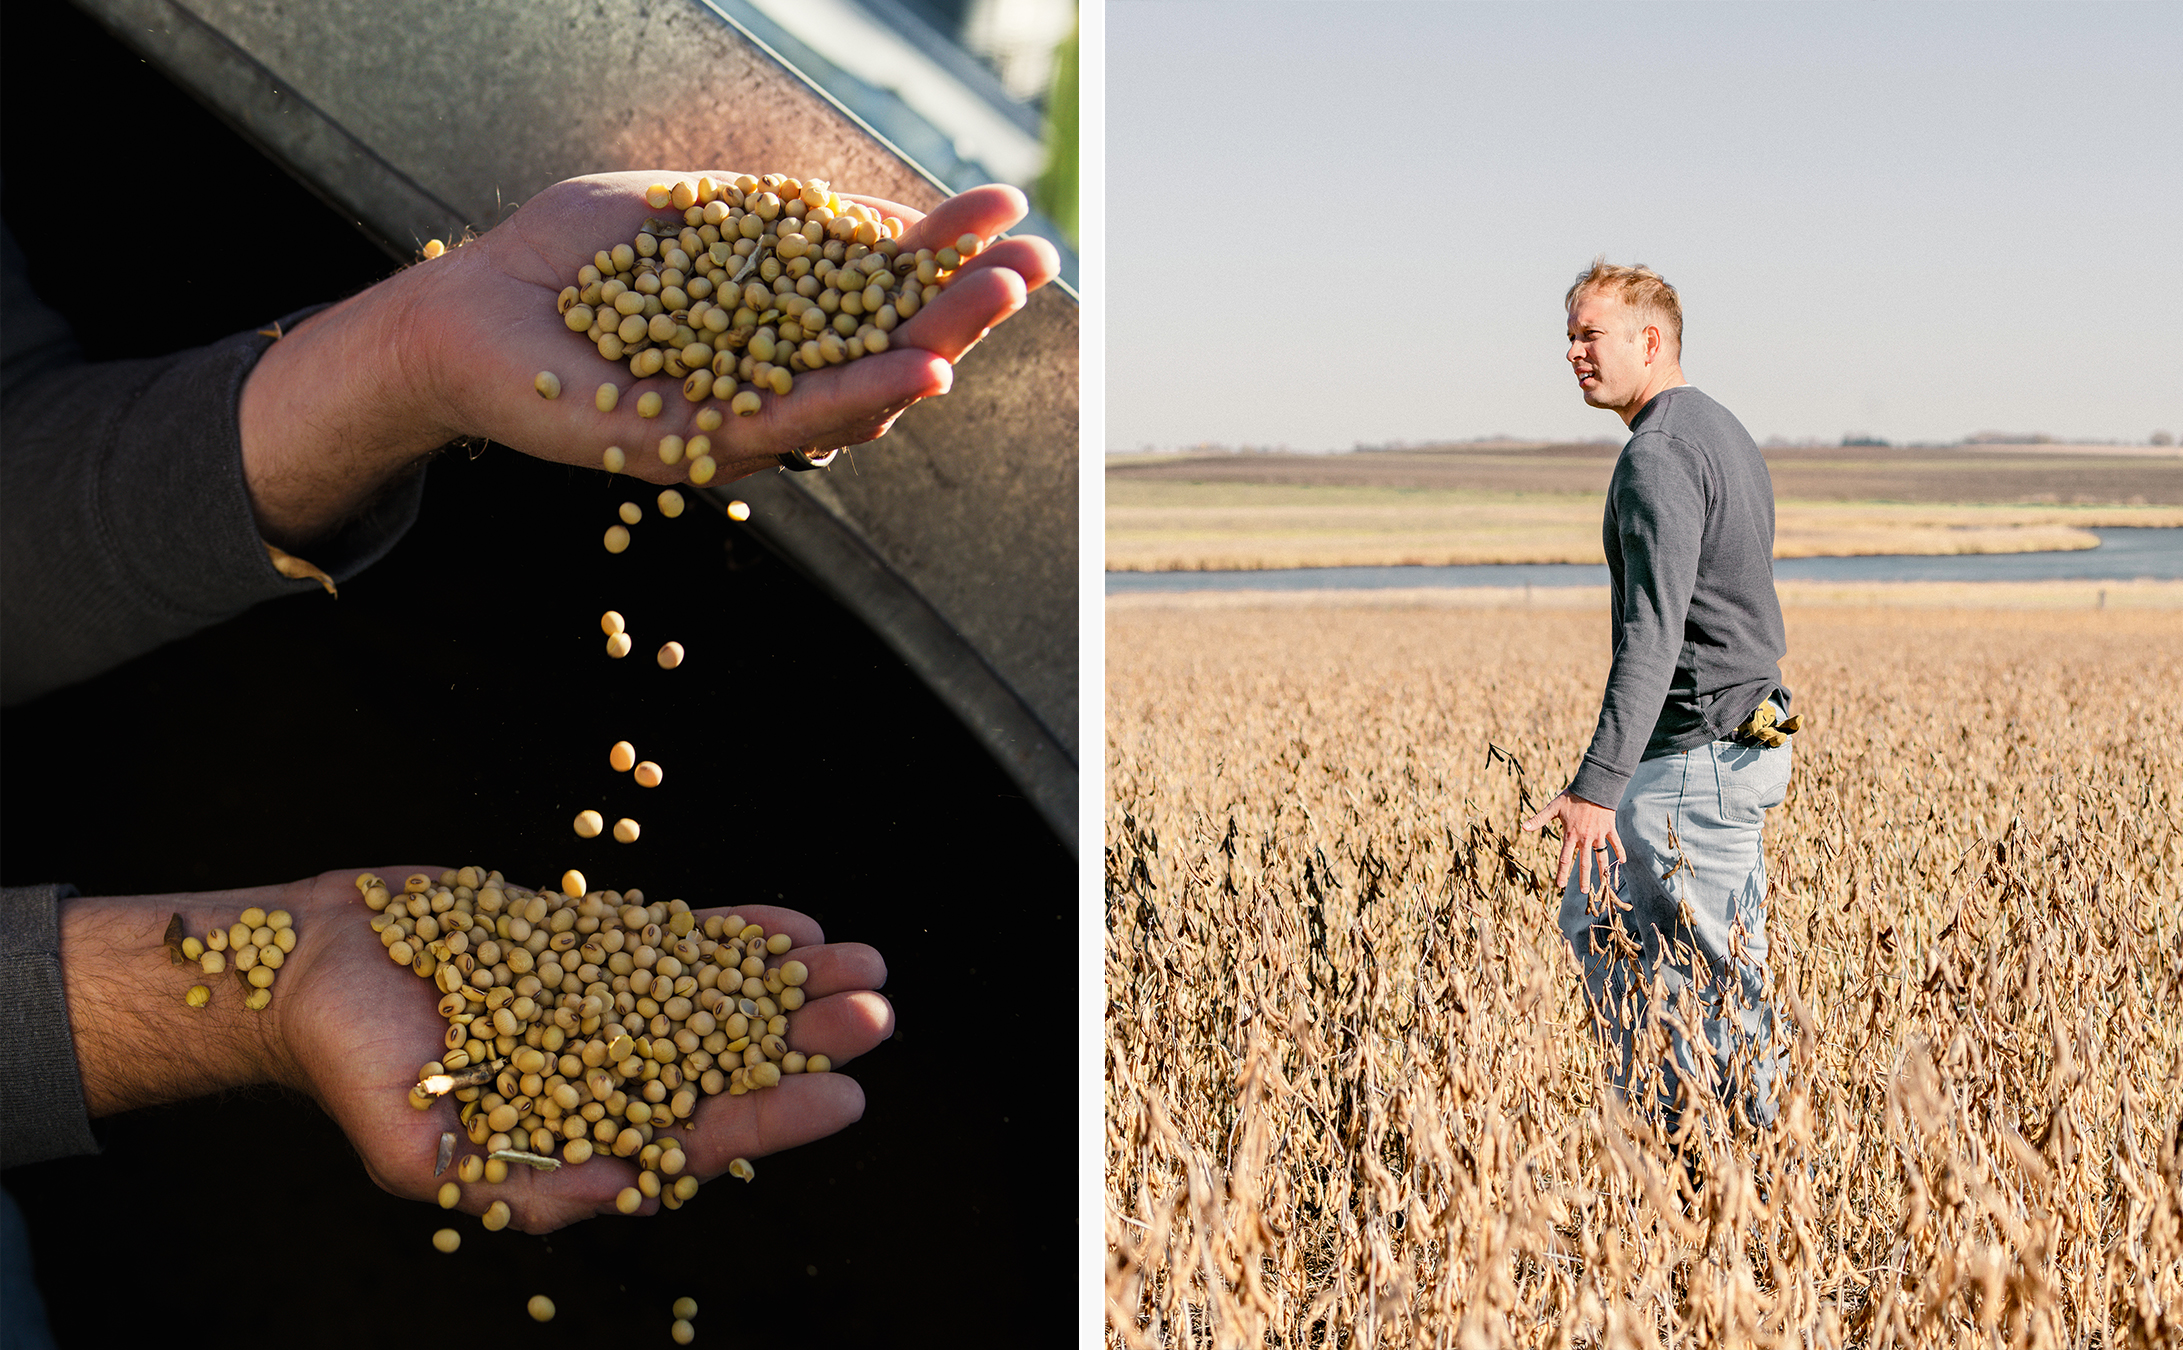 """<b><a href=""""https://www.technologyreview.com/s/609230/these-are-not-your-fathers-gmos/"""" target=""""_blank"""">These Are Not Your Father's GMOs </a></b> <br> Photographs by Matthew Hintz"""